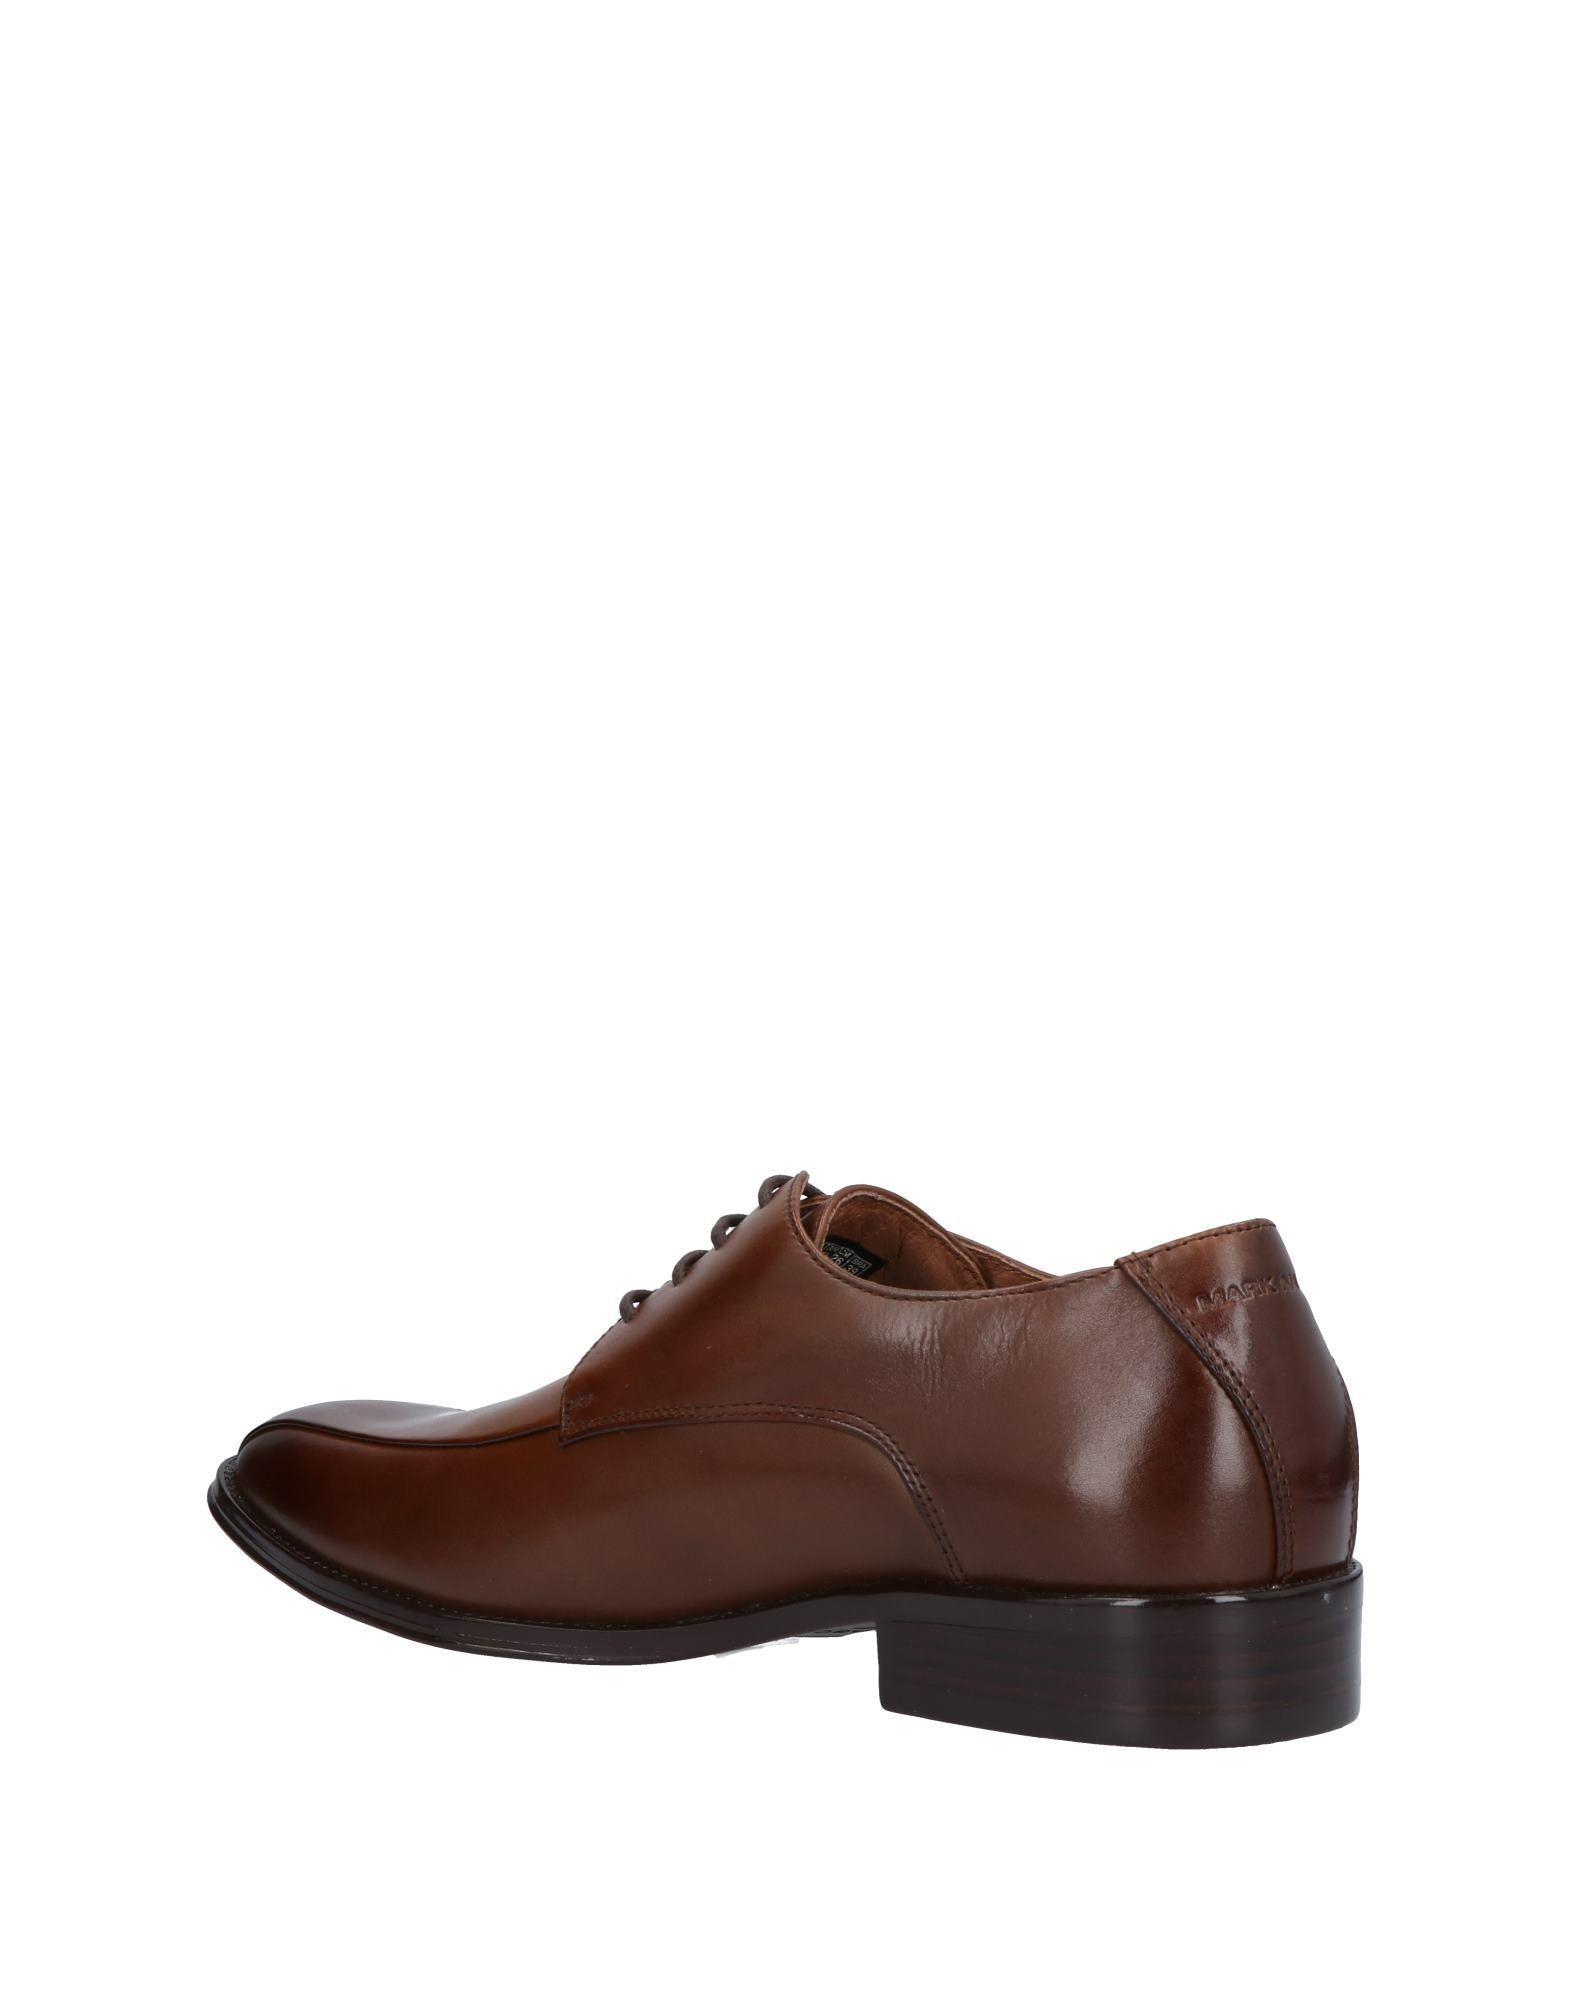 9b9b2d95229 Lyst - Mark Nason Lace-up Shoe in Brown for Men